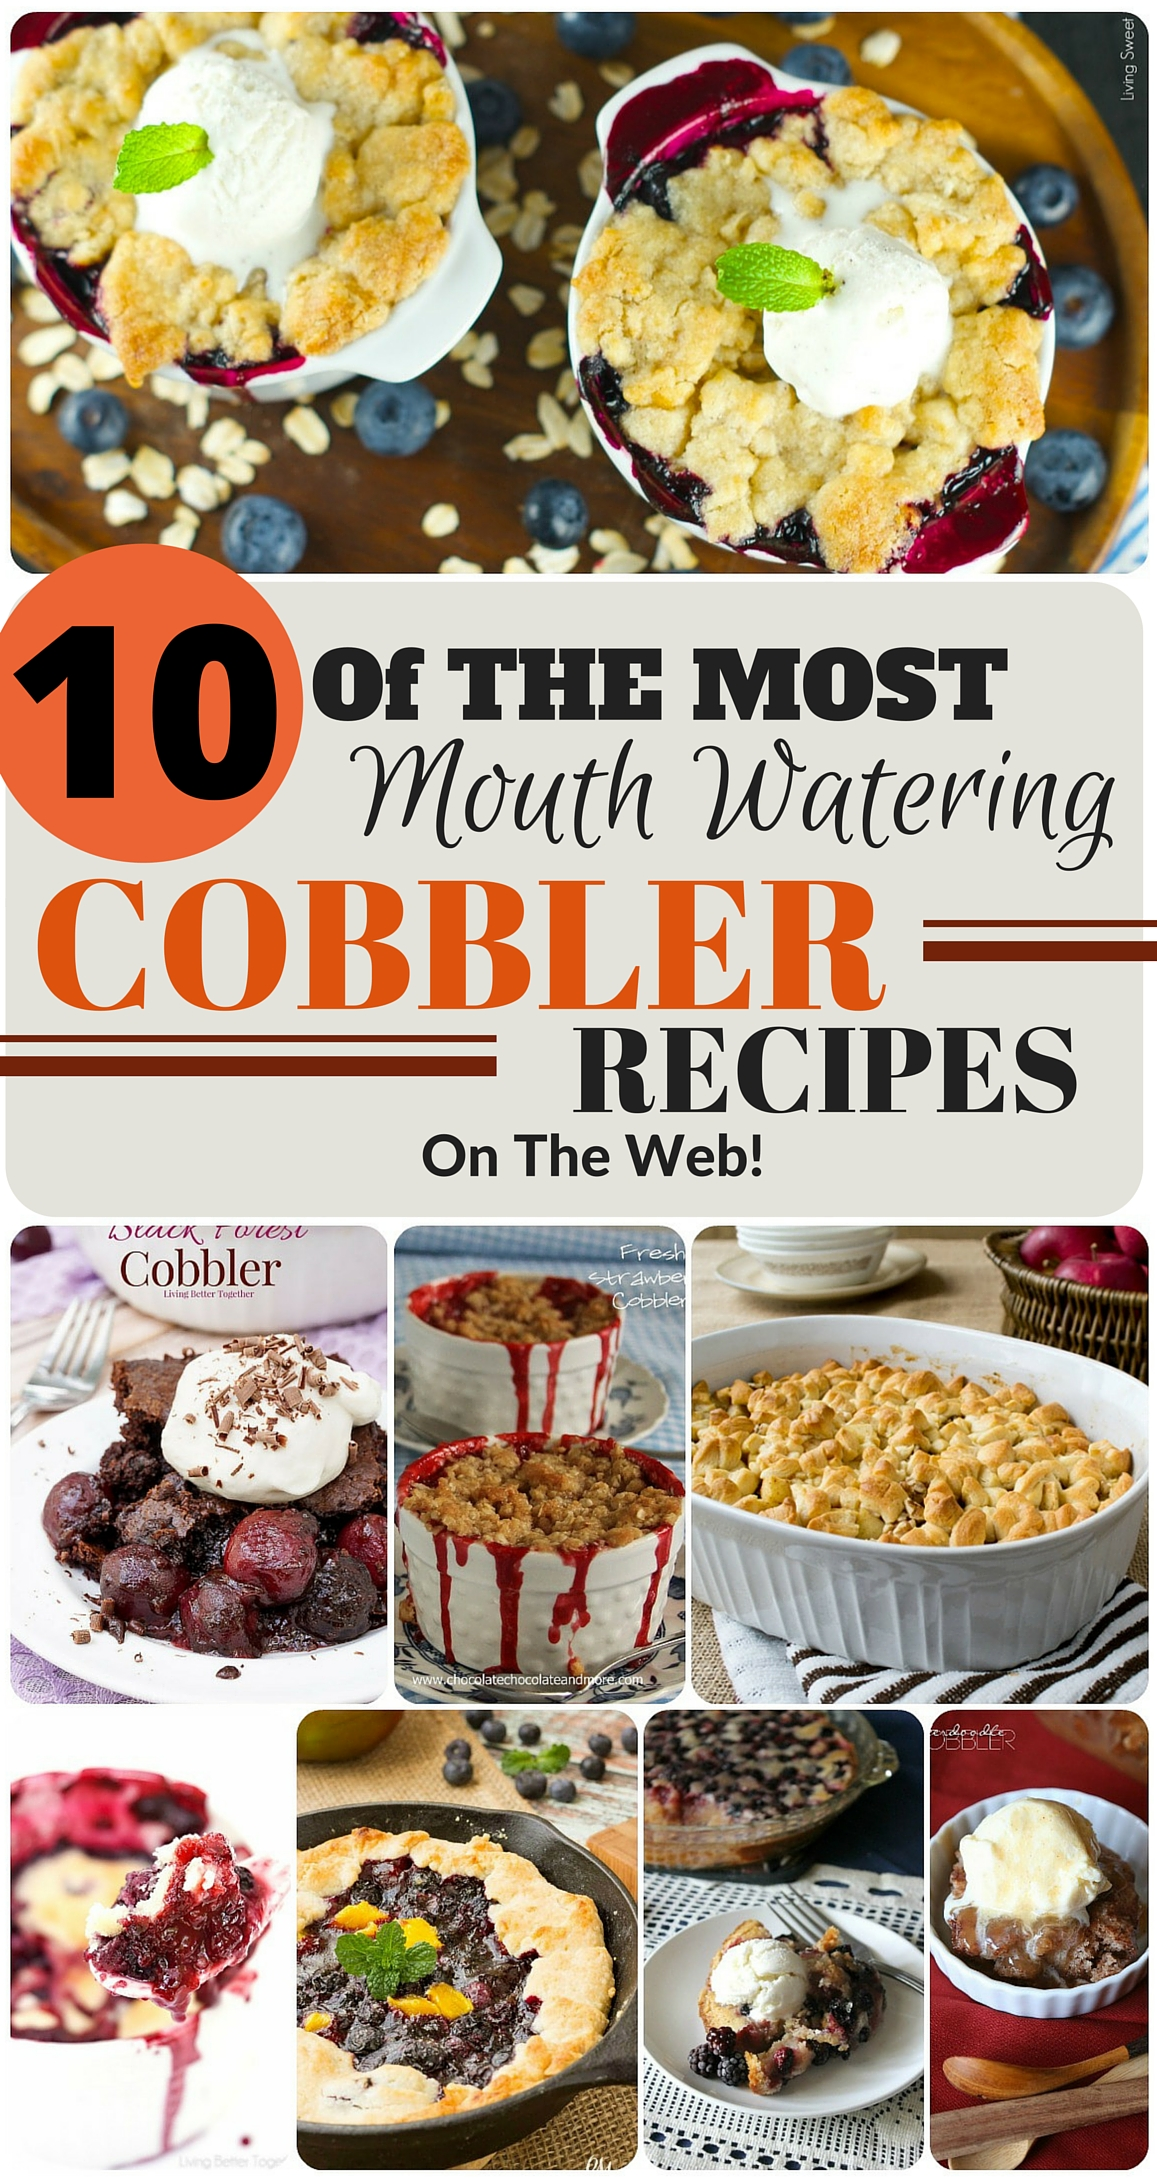 These cobbler recipes look amazing!! I specifically can't wait to try the black forest one.